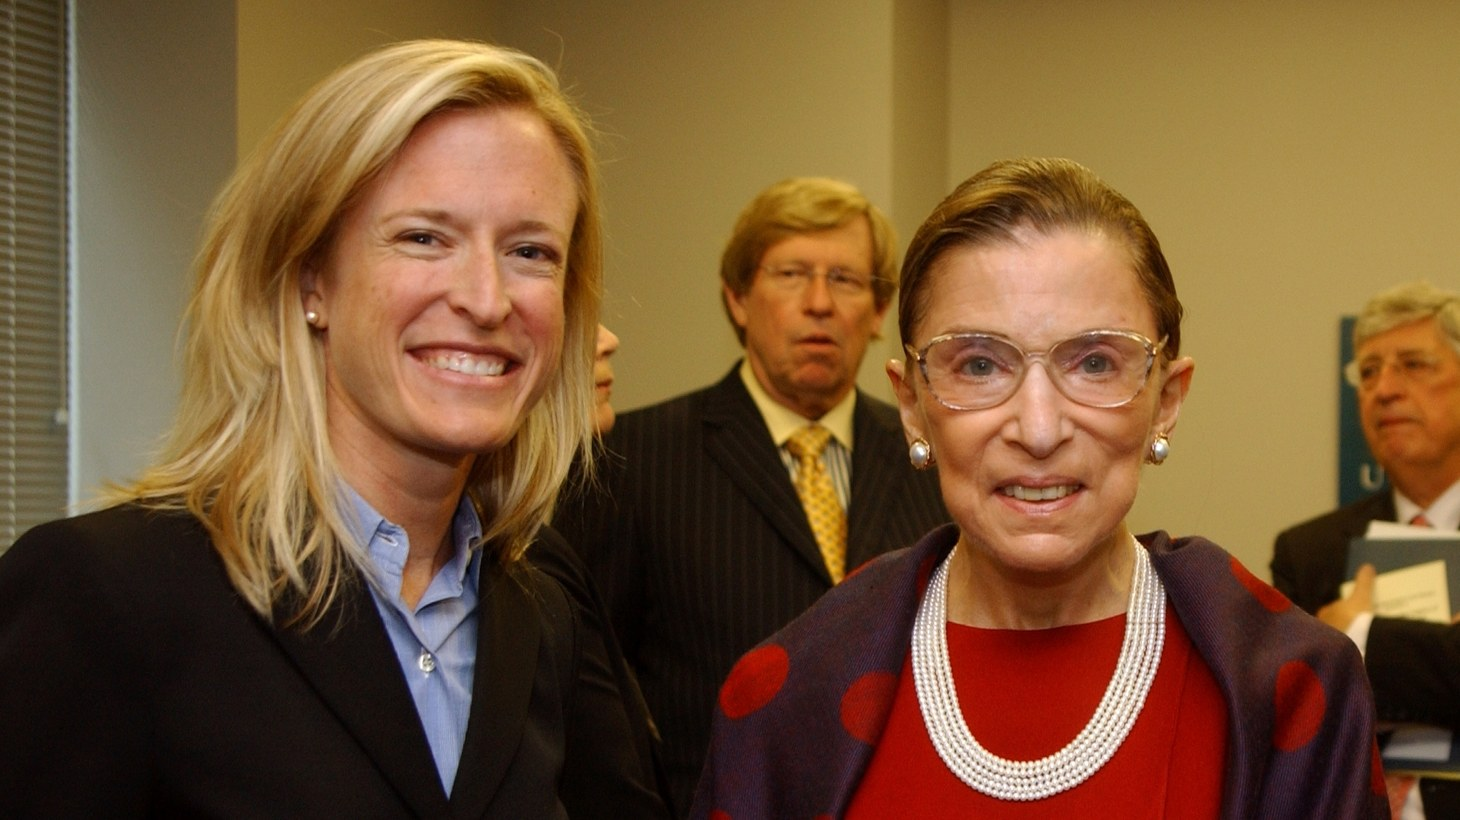 """Berkeley law professor Amanda L. Tyler with Justice Ruth Bader Ginsburg in 2005. """"She used to tell her clerks, 'You can have it all, may not be able to have it all at the same time, but you can have it all.' She had a patience about her that I think also fed into an optimism of all that we could accomplish. But she understood you wouldn't always necessarily be able to do it overnight,"""" says Tyler."""